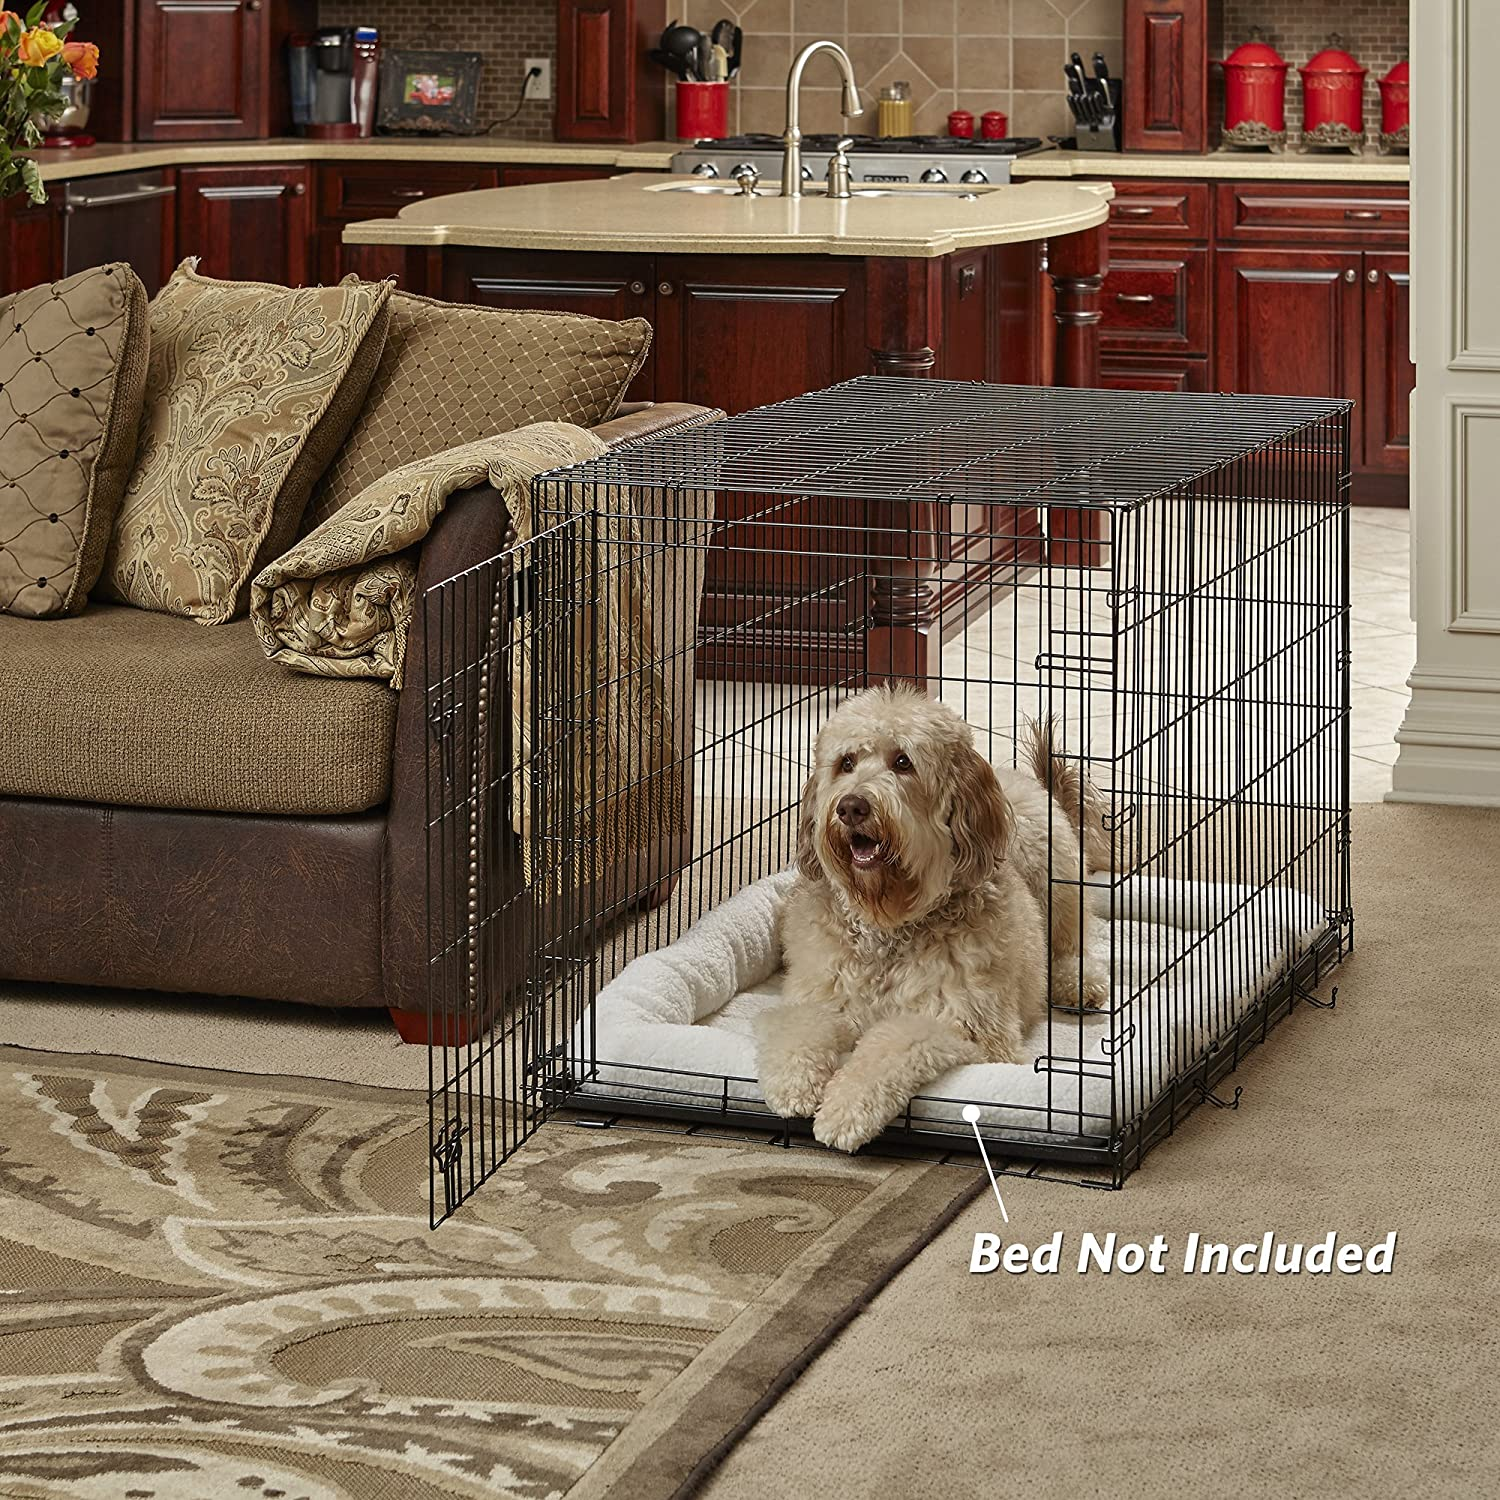 Large Dog Crate MidWest Life Stages Folding Metal Dog Crate Divider Panel, Floor Protecting Feet, Leak-Proof Dog Tray 42L x 28W x 31H Inches, Large Dog